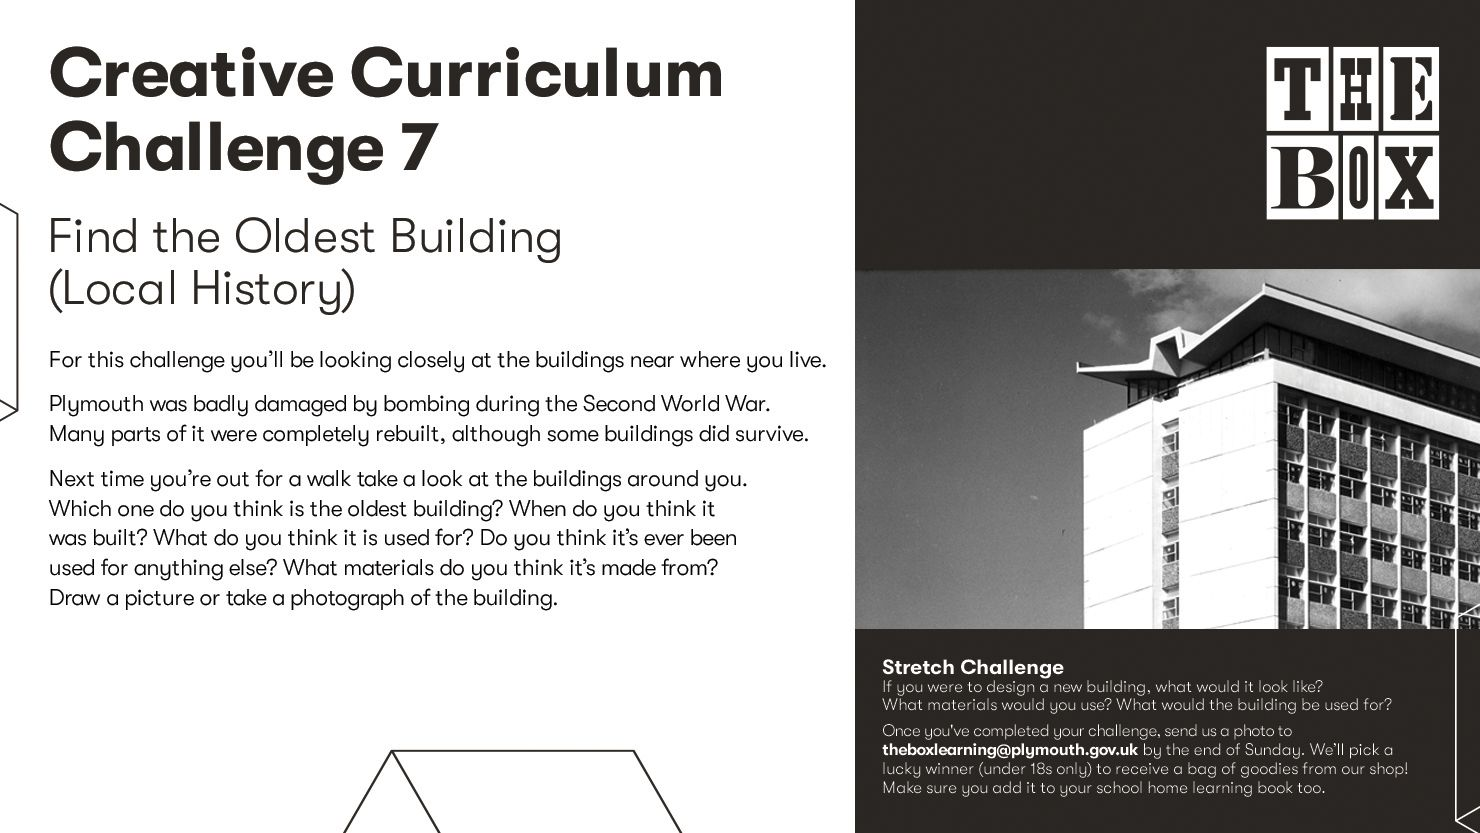 Graphic for The Box's Curriculum Challenge 7